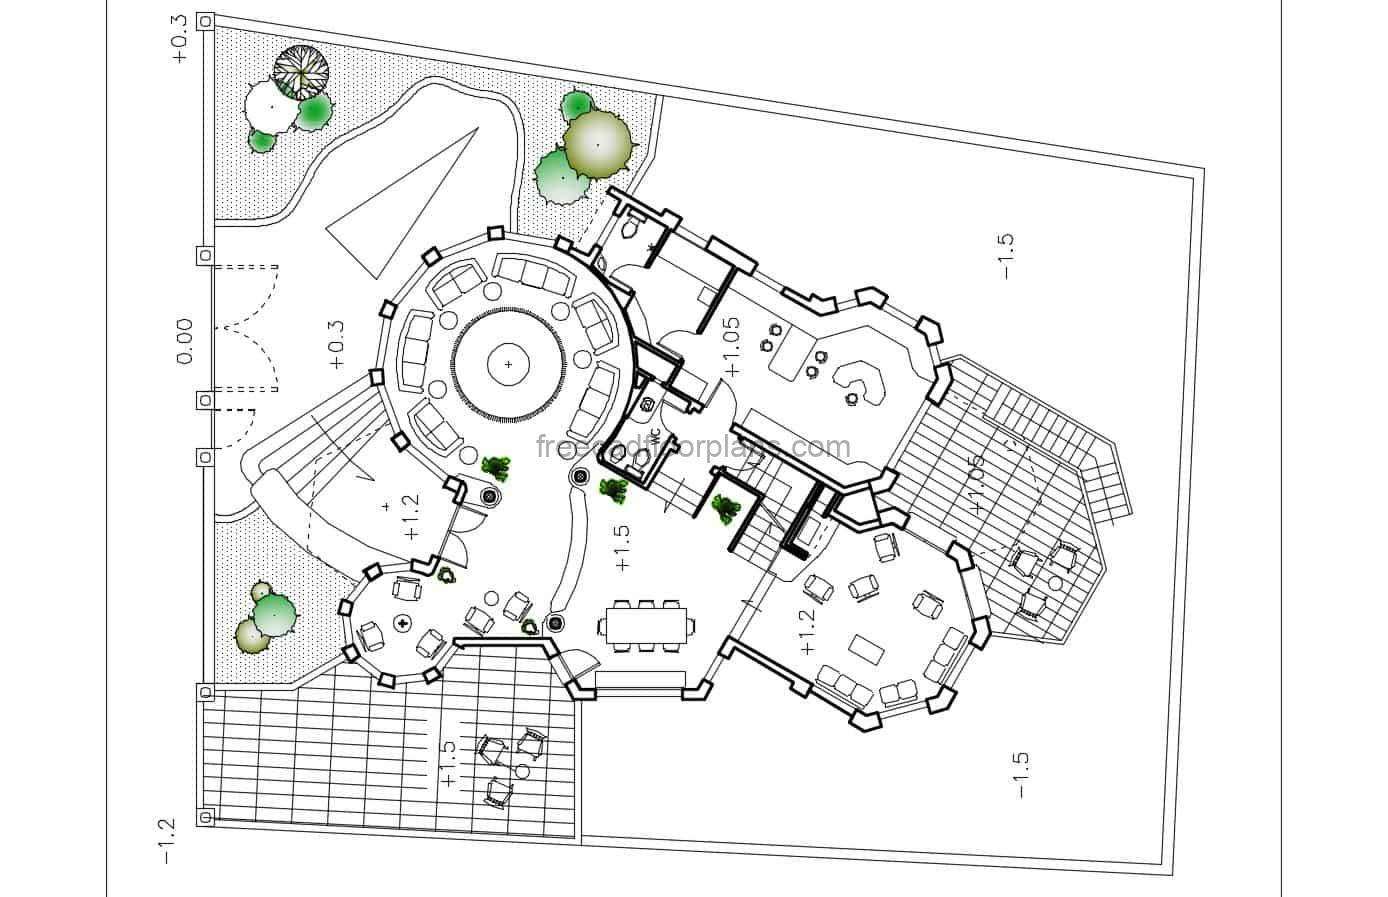 Three Story House With Circular Shape Autocad Plan 1602201 Free Cad Floor Plans